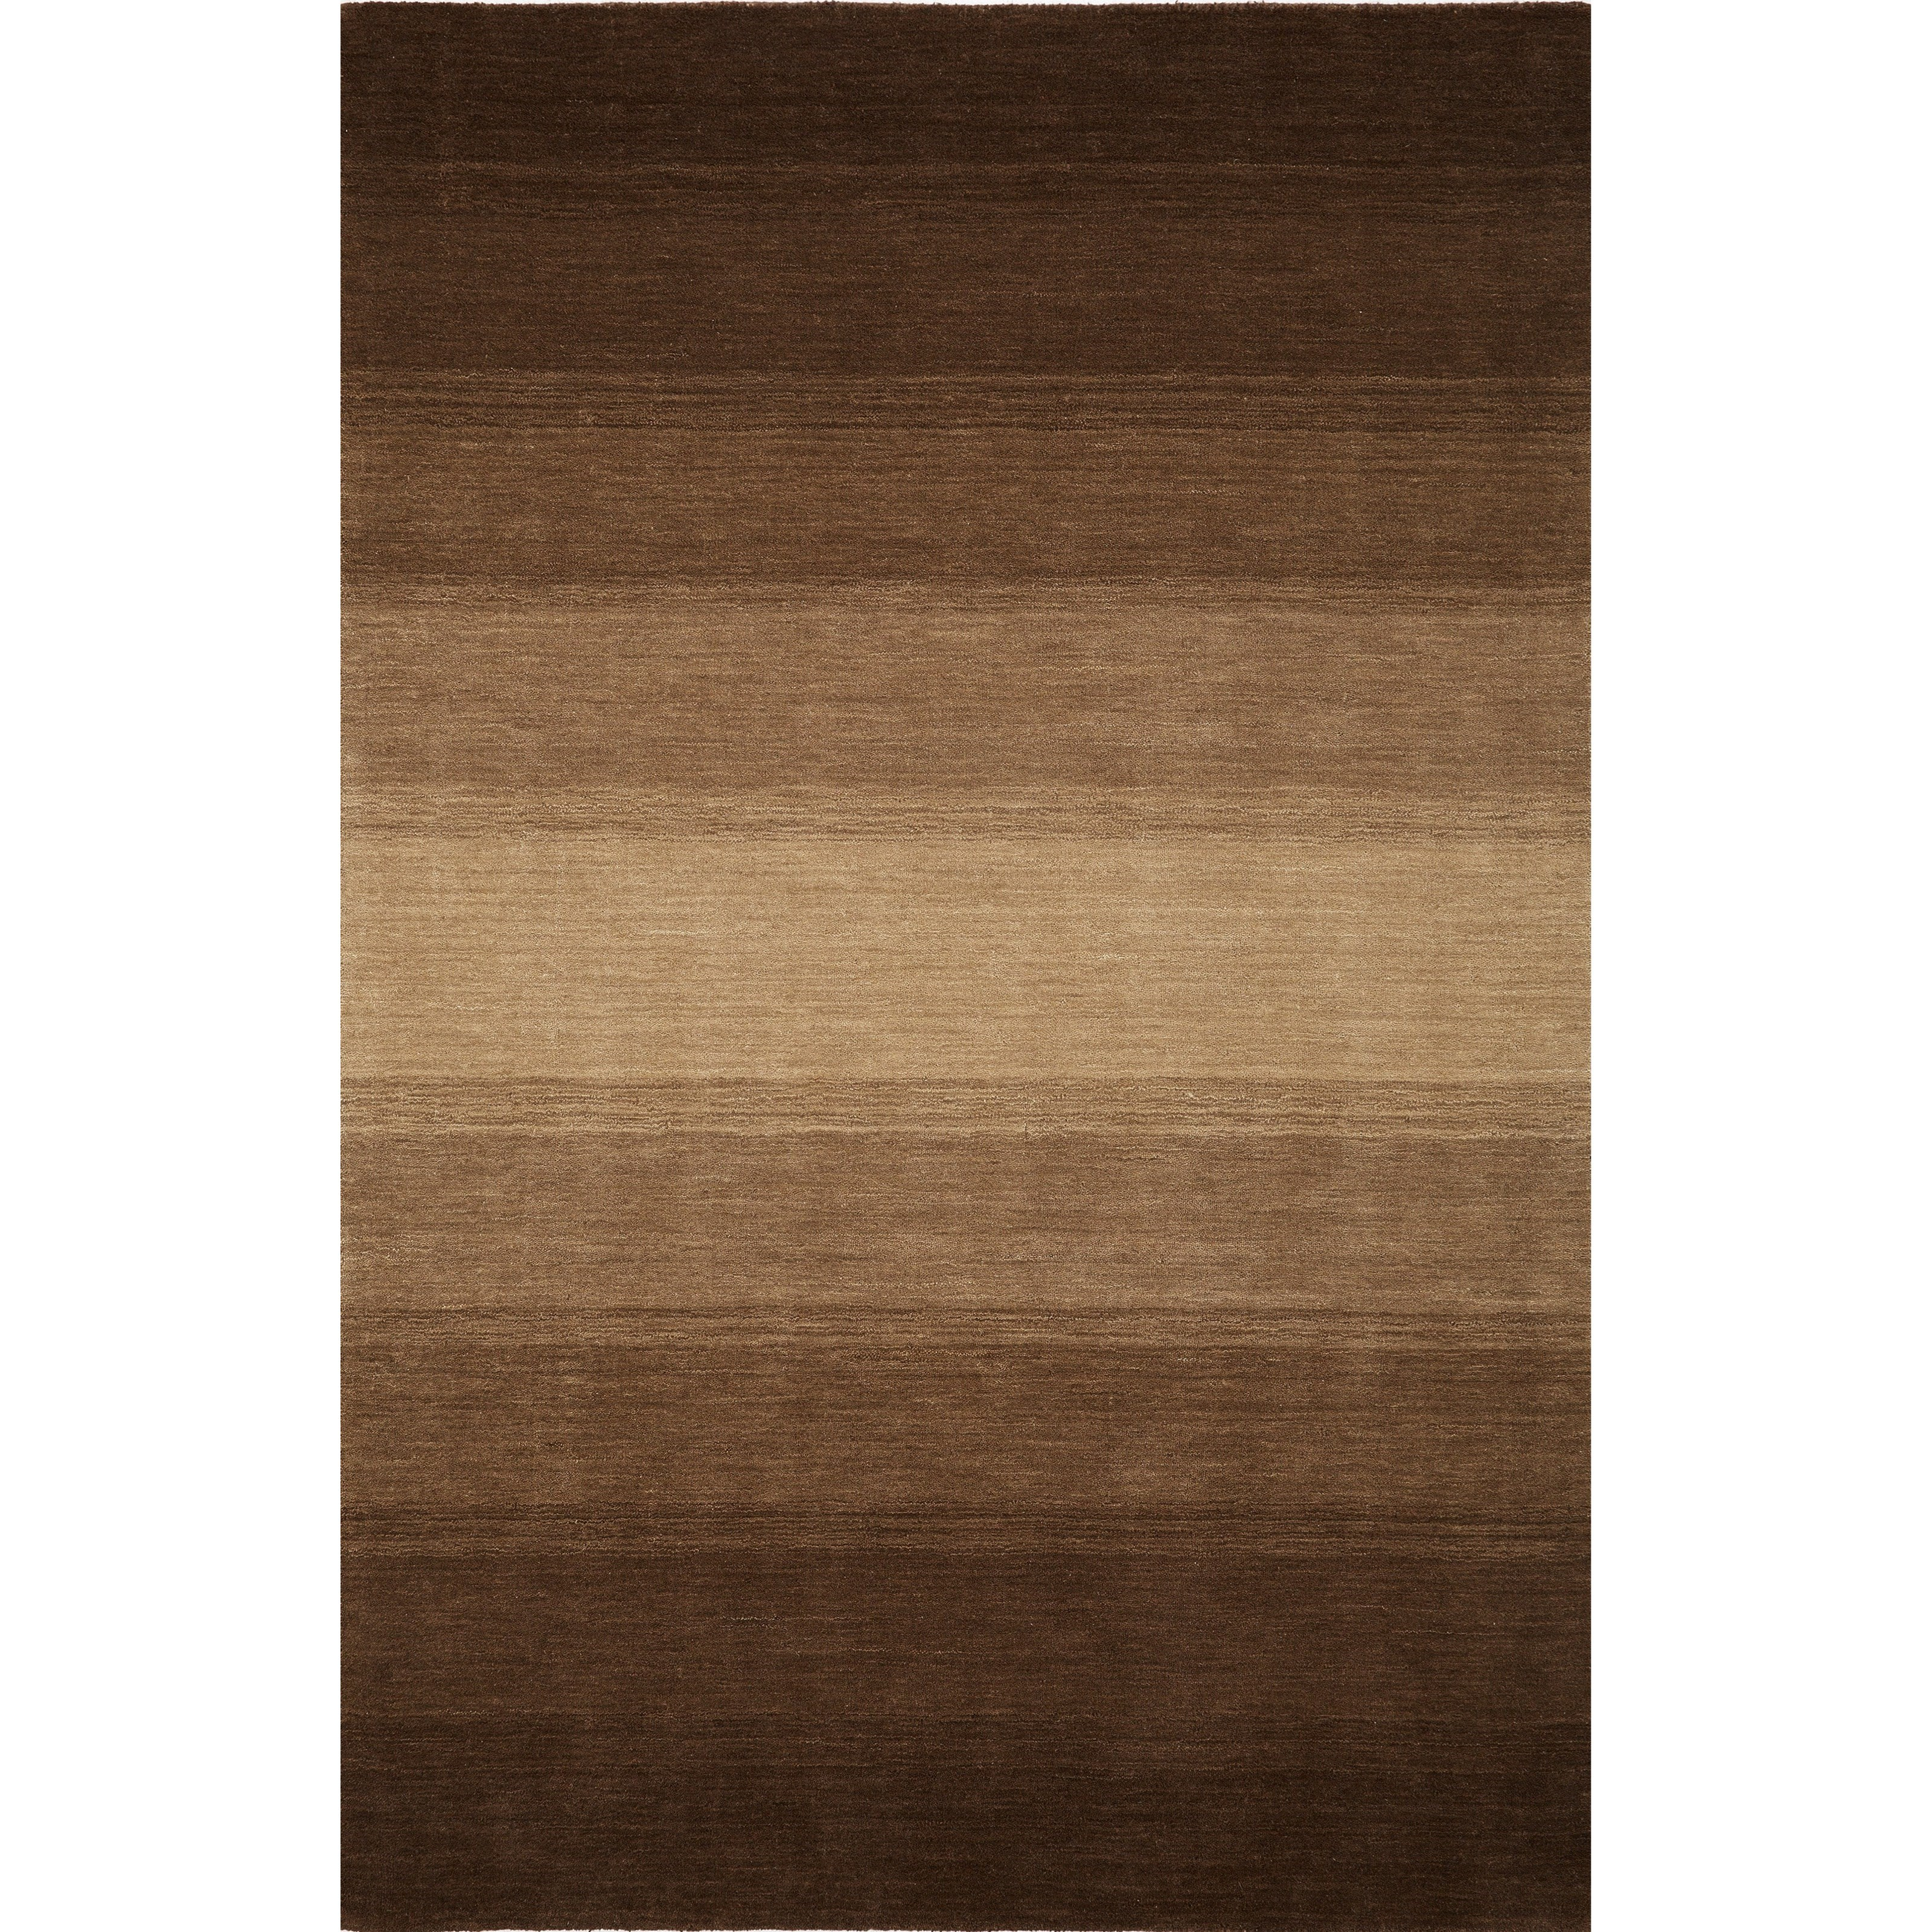 "Torino Chocolate 7'9""X9'9"" Rug by Dalyn at Sadler's Home Furnishings"